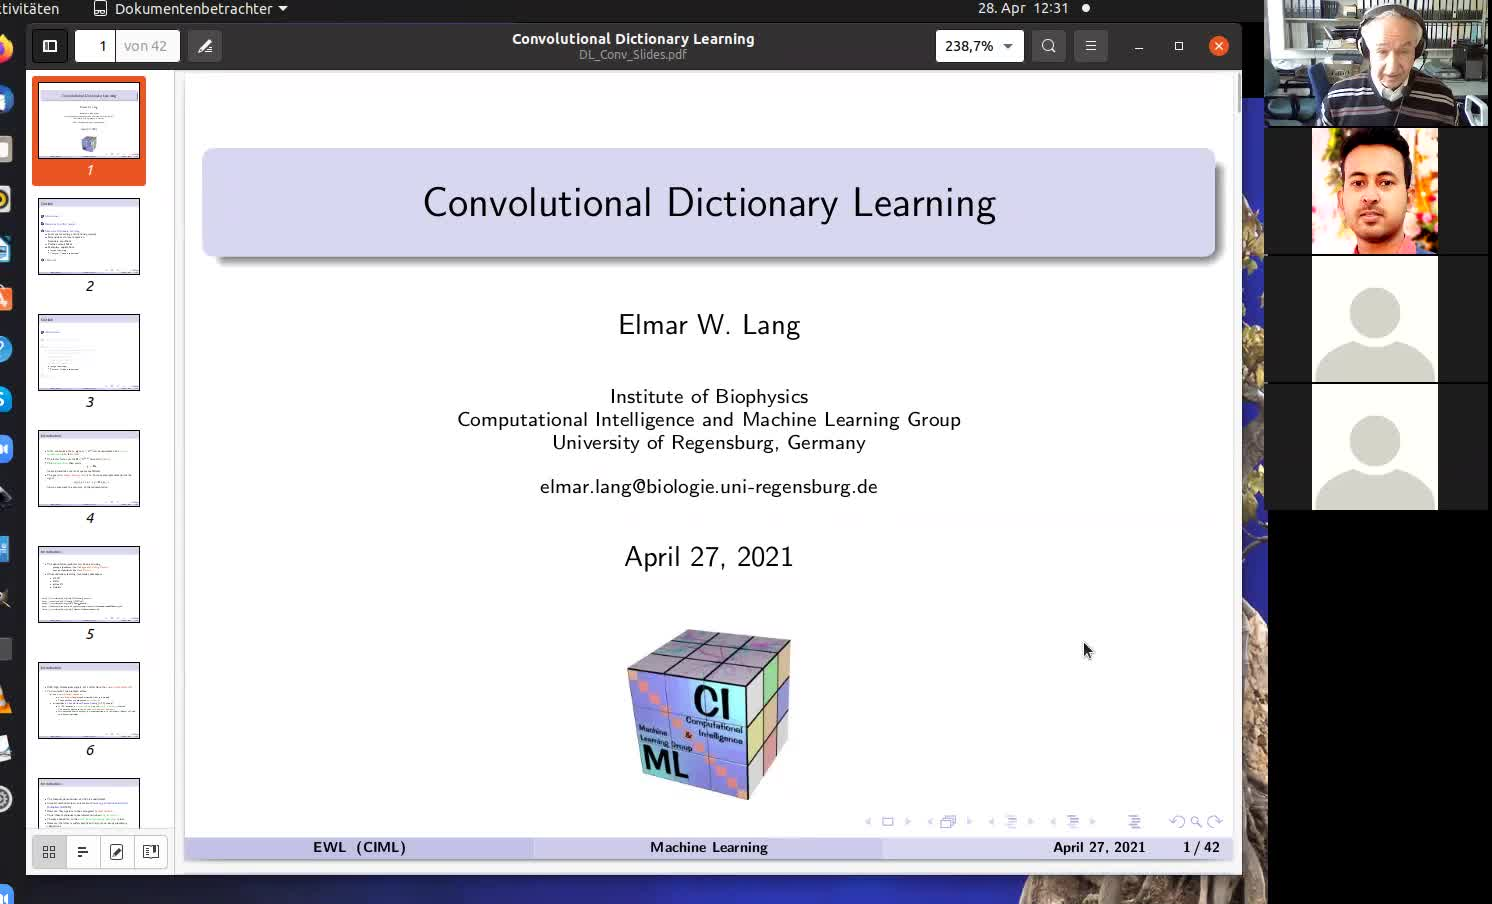 Convolutional Dictionary Learning